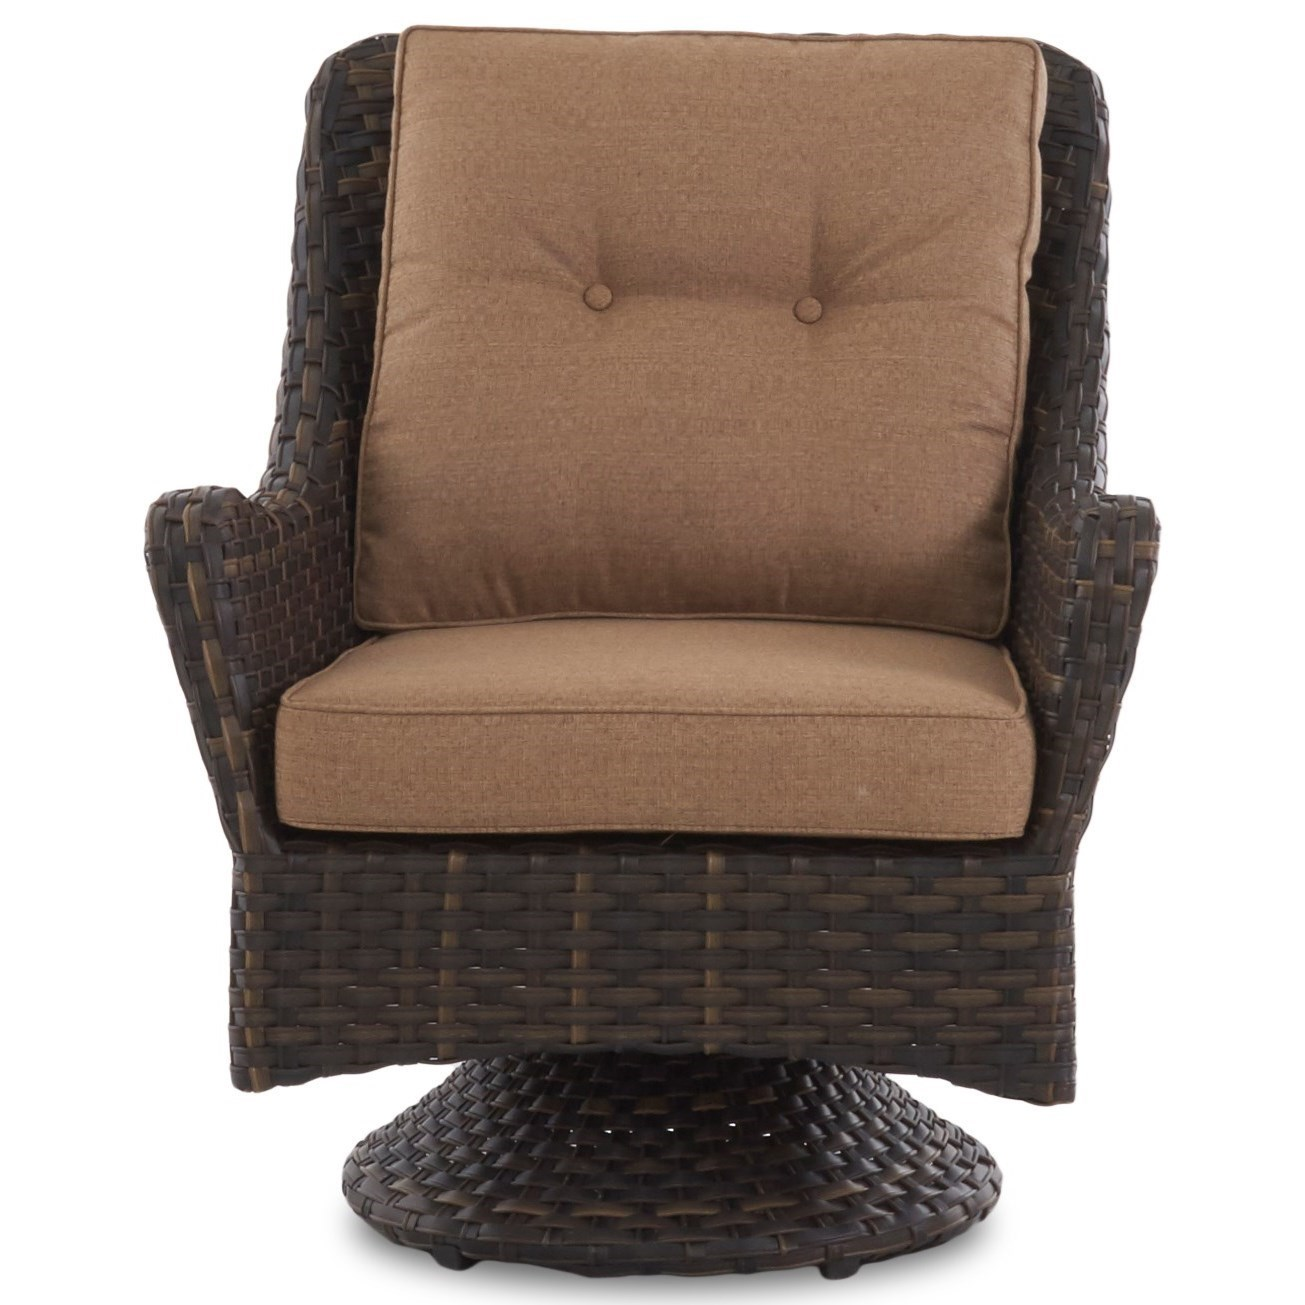 Swivel Rocking Chairs Bayley Outdoor Swivel Rocking Chair With Reversible Cushions By Klaussner Outdoor At Pilgrim Furniture City